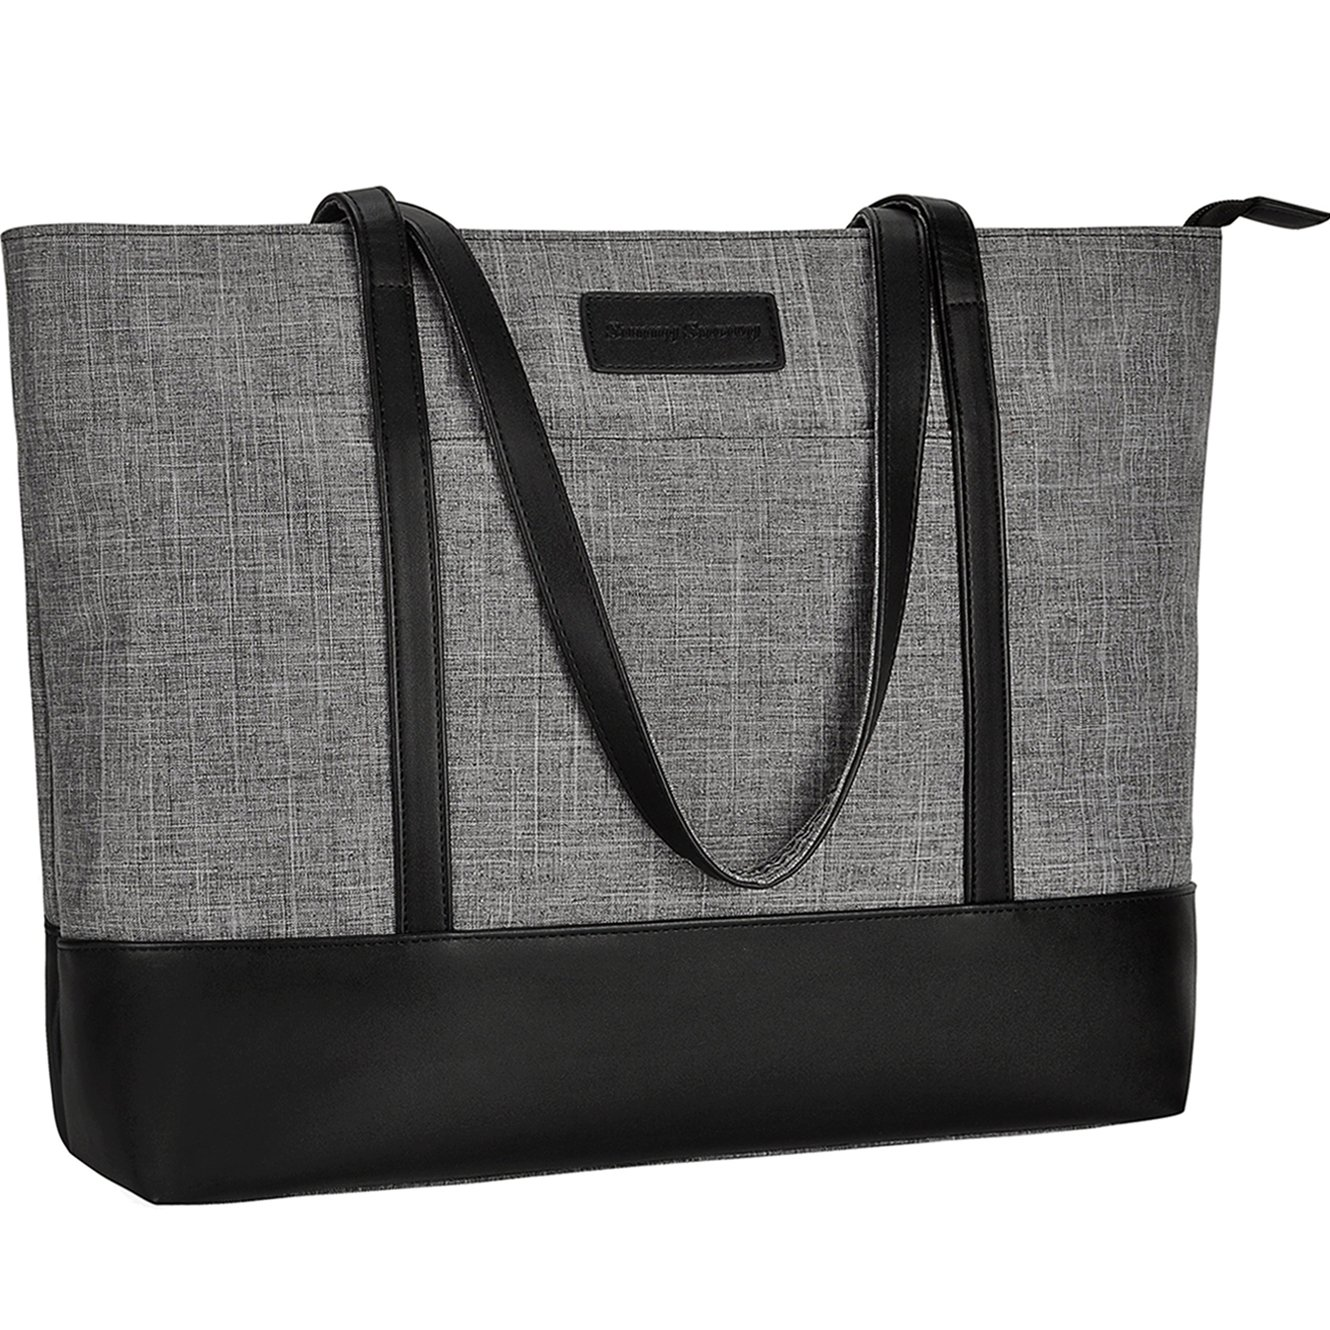 Laptop Bag,Multi Pockets Large Laptop Tote Bag,15.6 Inch Laptop Business Tote Bag for Women[gray] SS8032gray